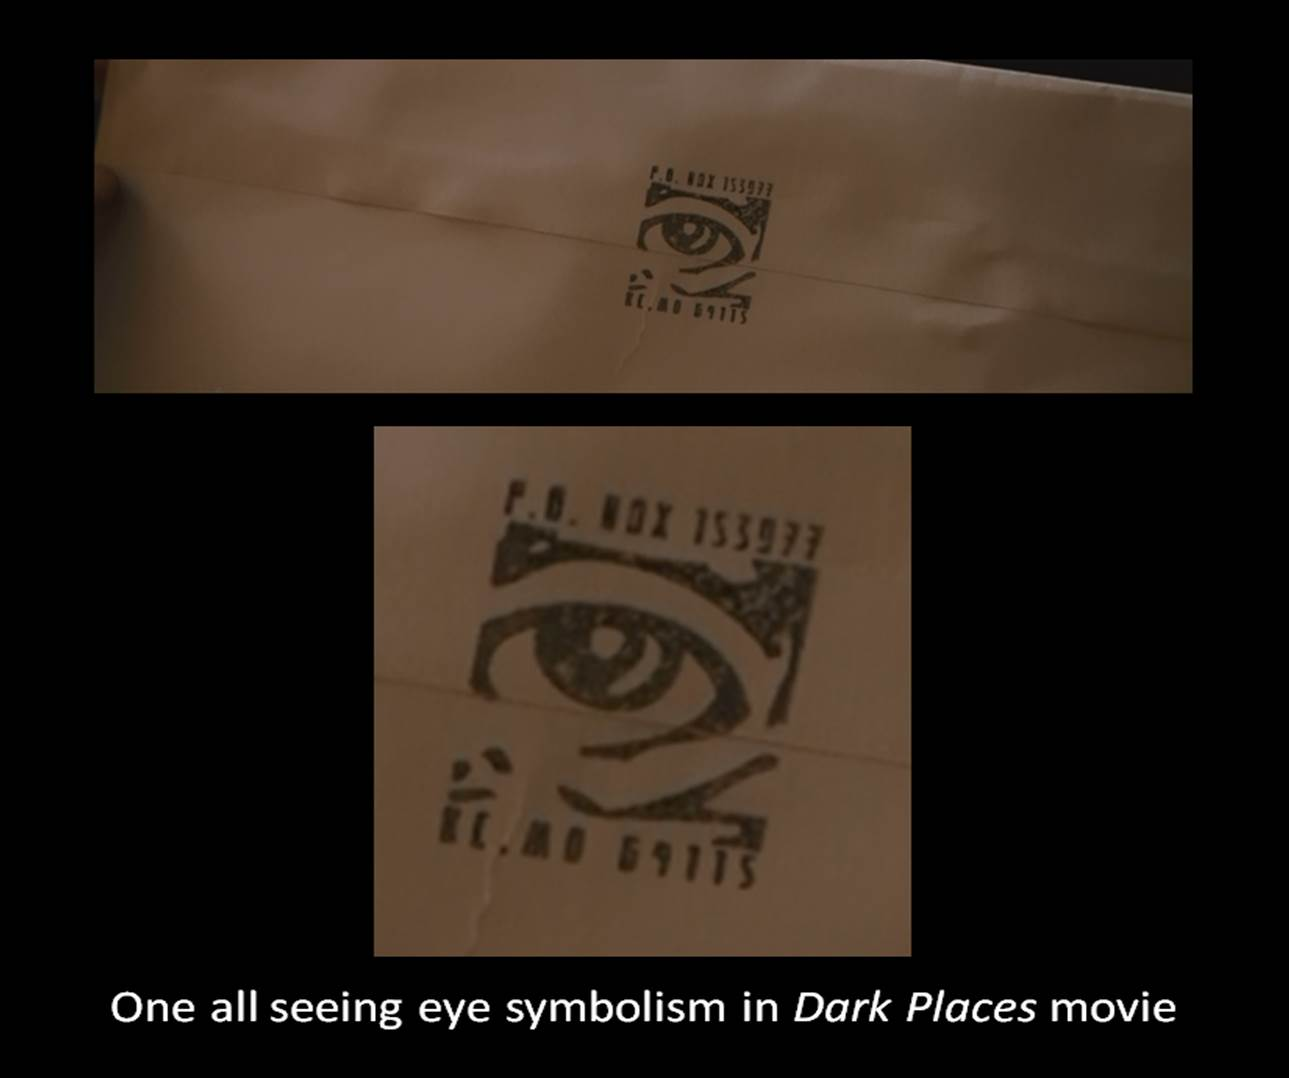 One all seeing eye symbolism in movie posters book covers true these are mere very few movie posters and book covers that feature one all seeing eye symbolism as there is an endless array of such biocorpaavc